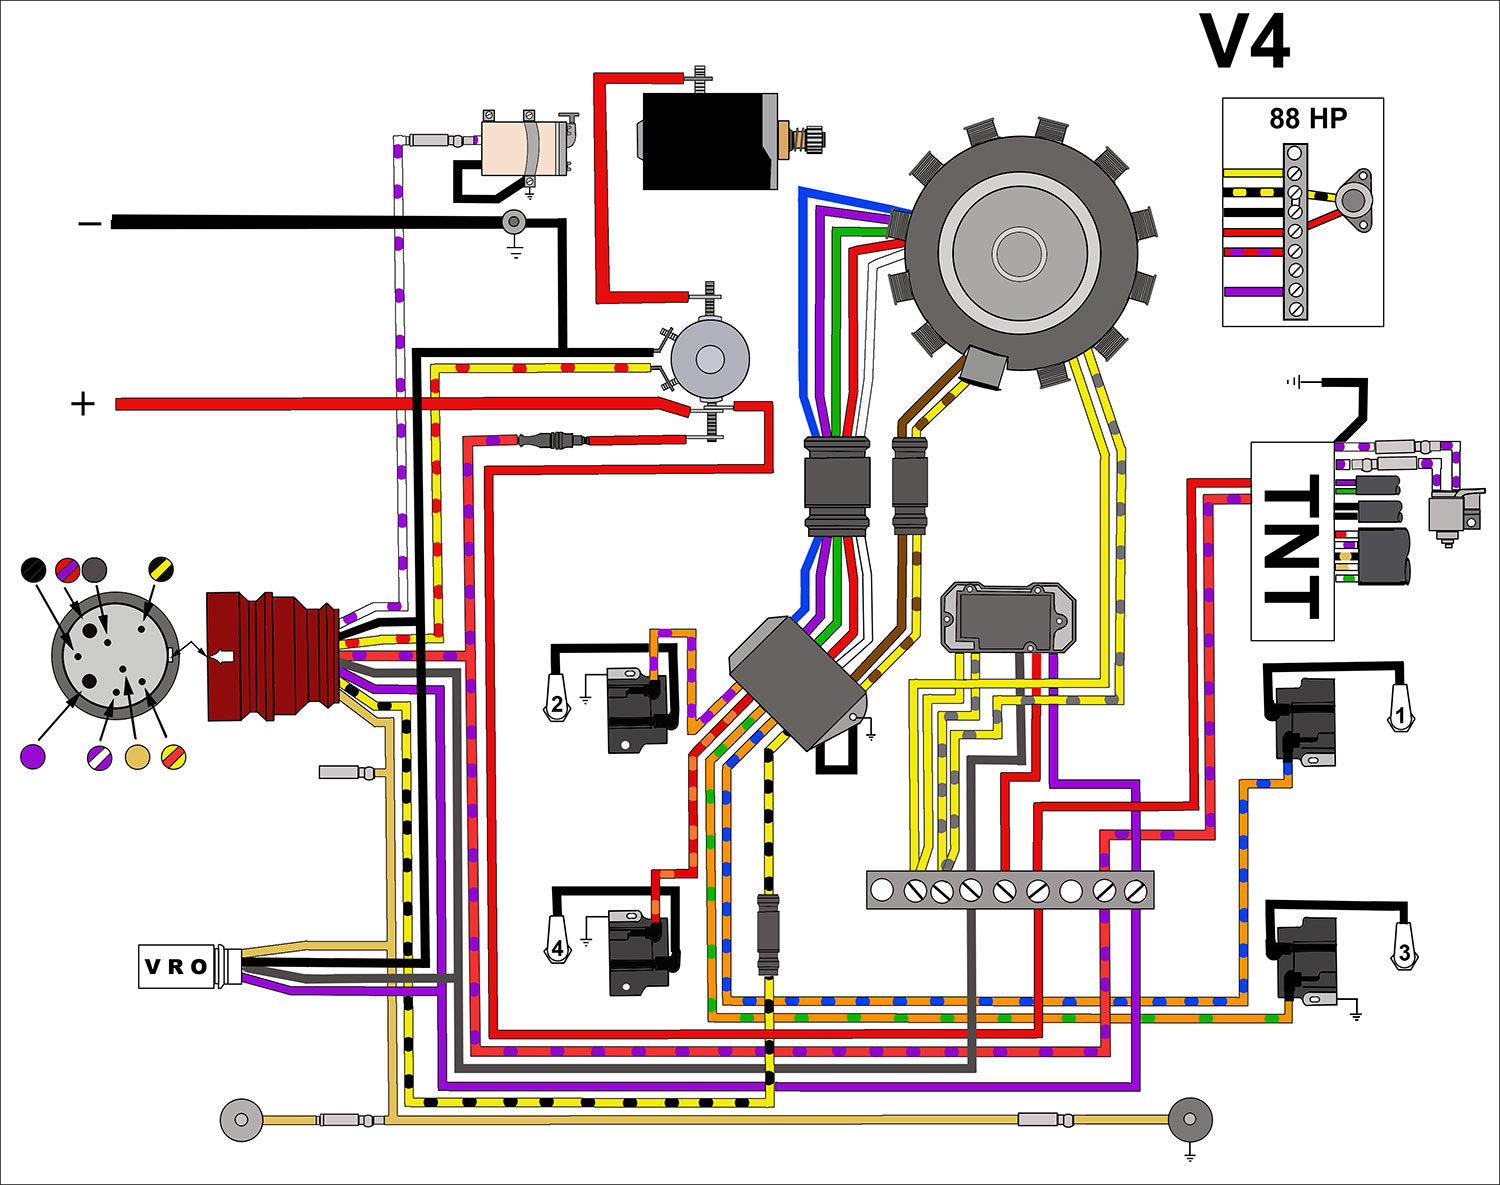 wiring diagram johnson 50 hp outboard evinrude johnson outboard wiring diagrams -- mastertech ... johnson 115 hp outboard motor wiring diagram 1195